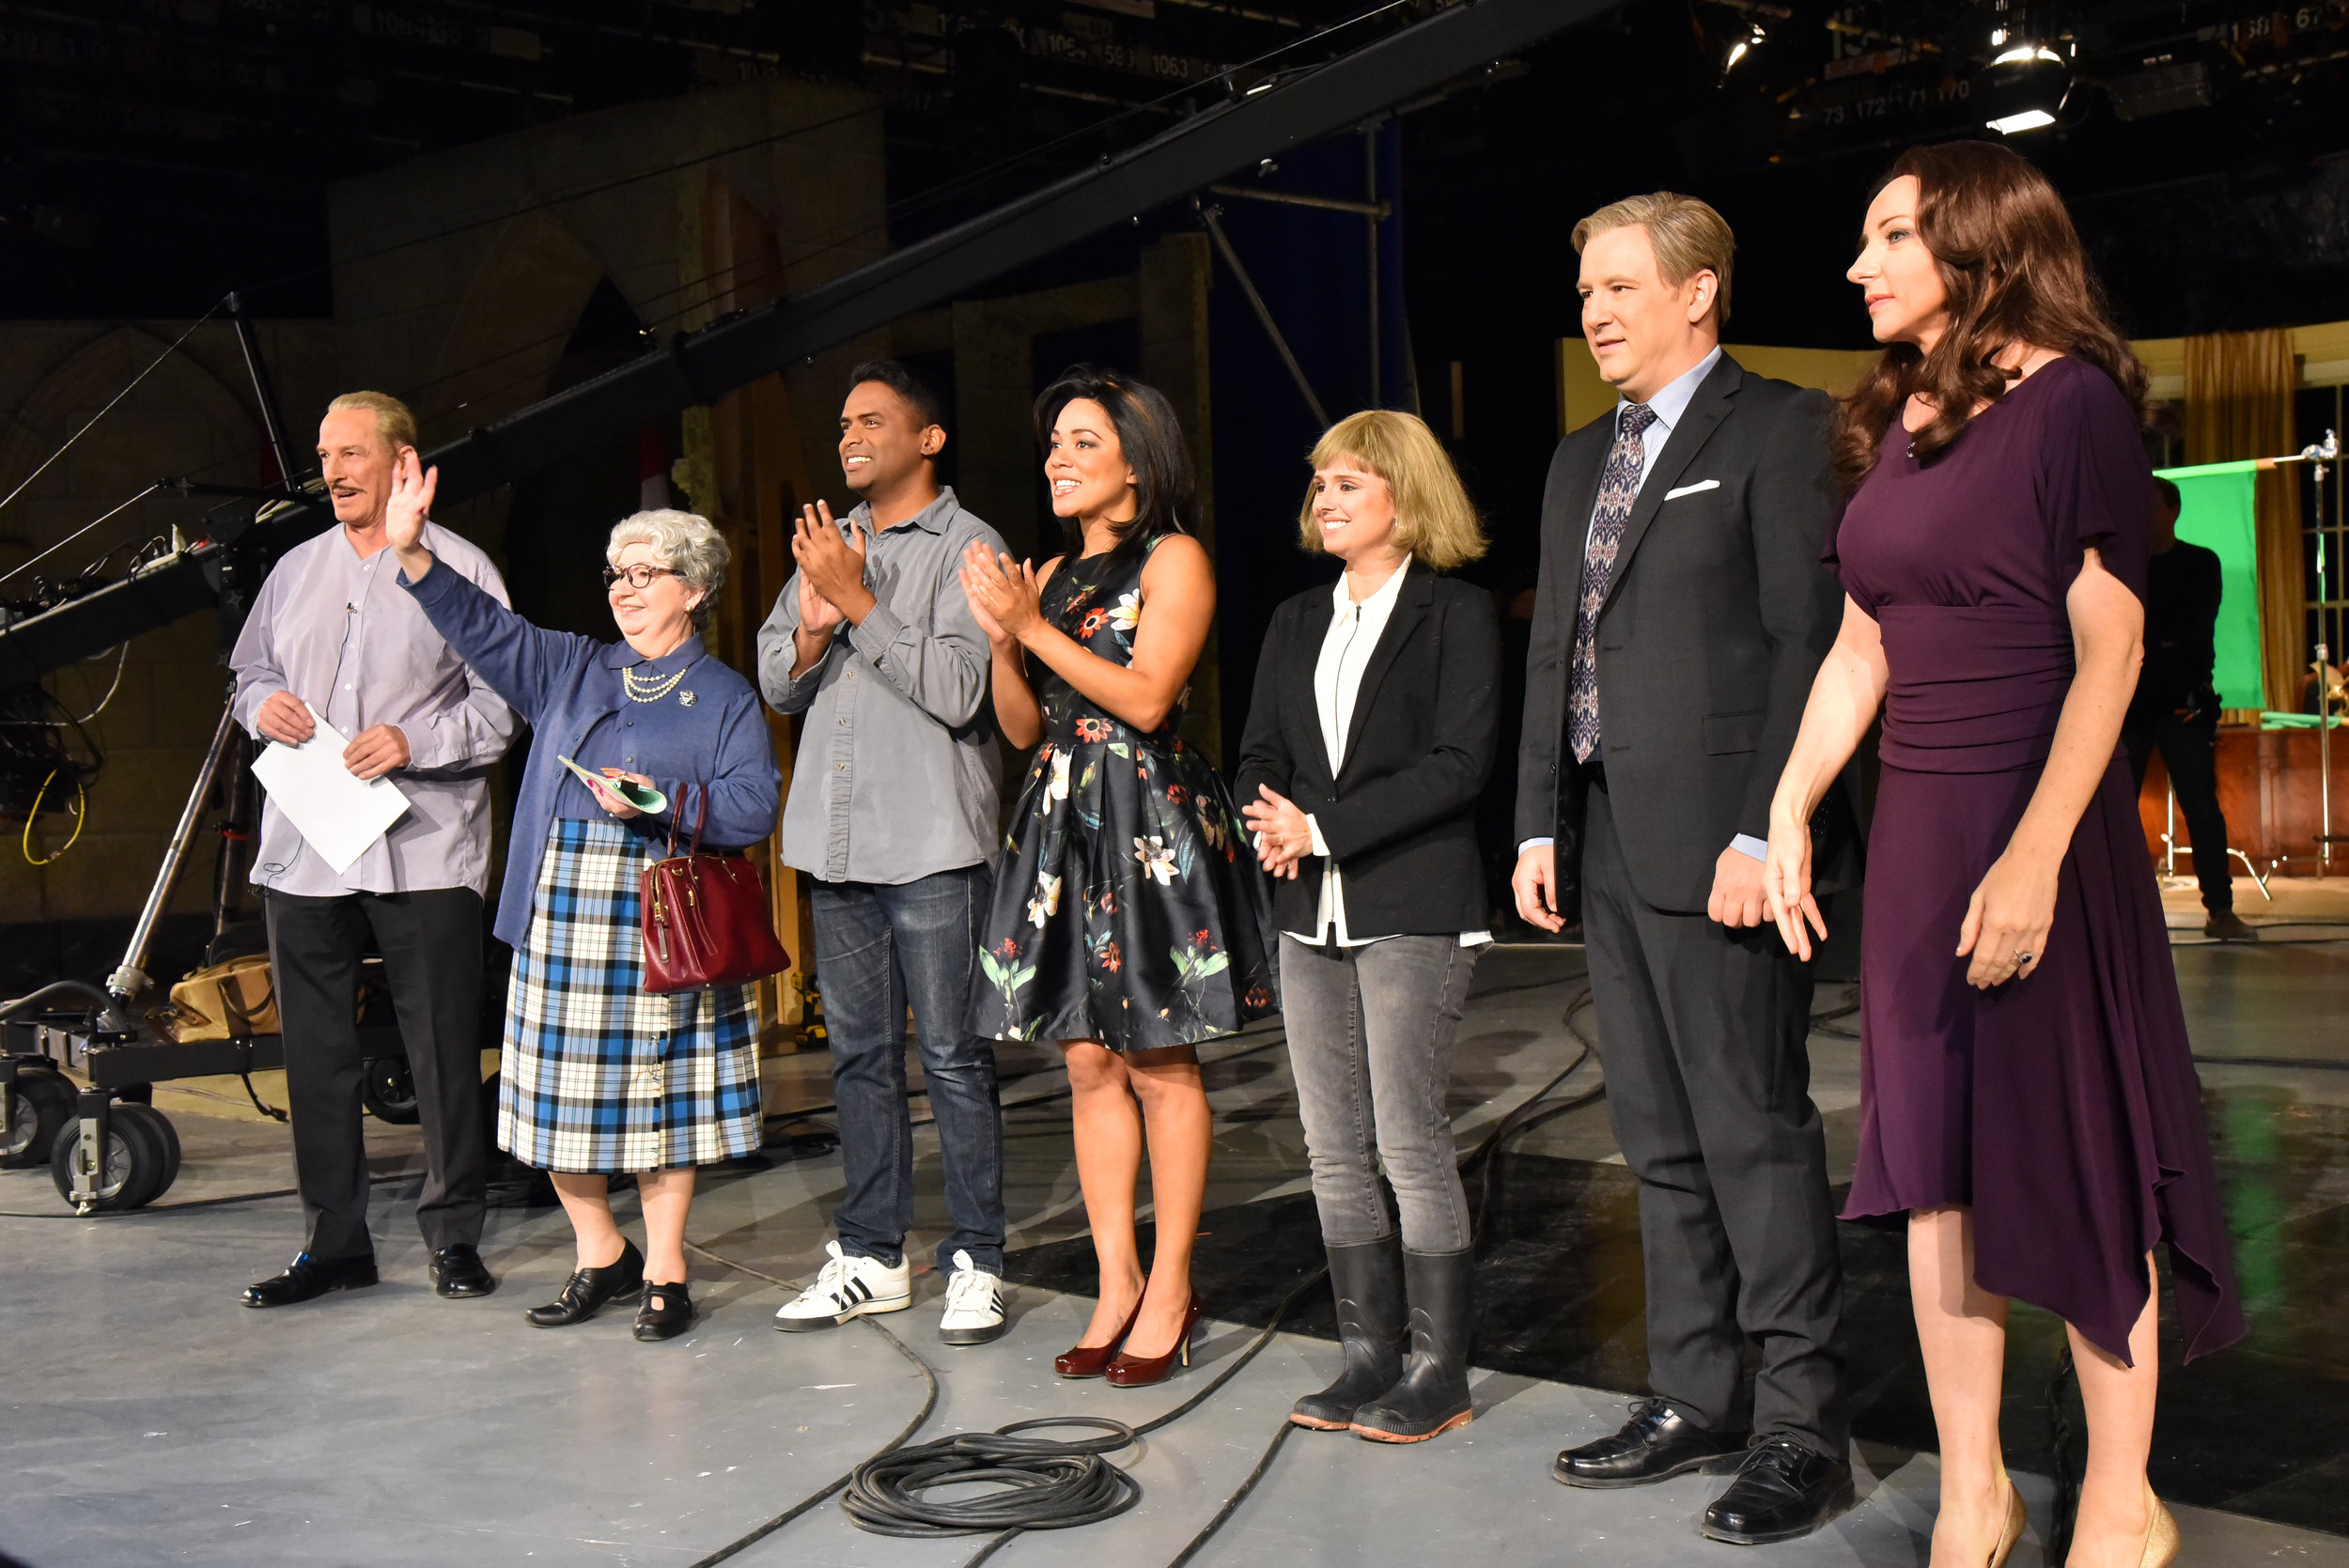 The cast of AIR FARCE NEW YEAR'S EVE 2016 greets the live studio audience (December 8, 2016): Don Ferguson, Luba Goy, Darryl Hinds, Aisha Alfa, Emma Hunter, Craig Lauzon, and -- returning for the first time in six years -- Jessica Holmes!